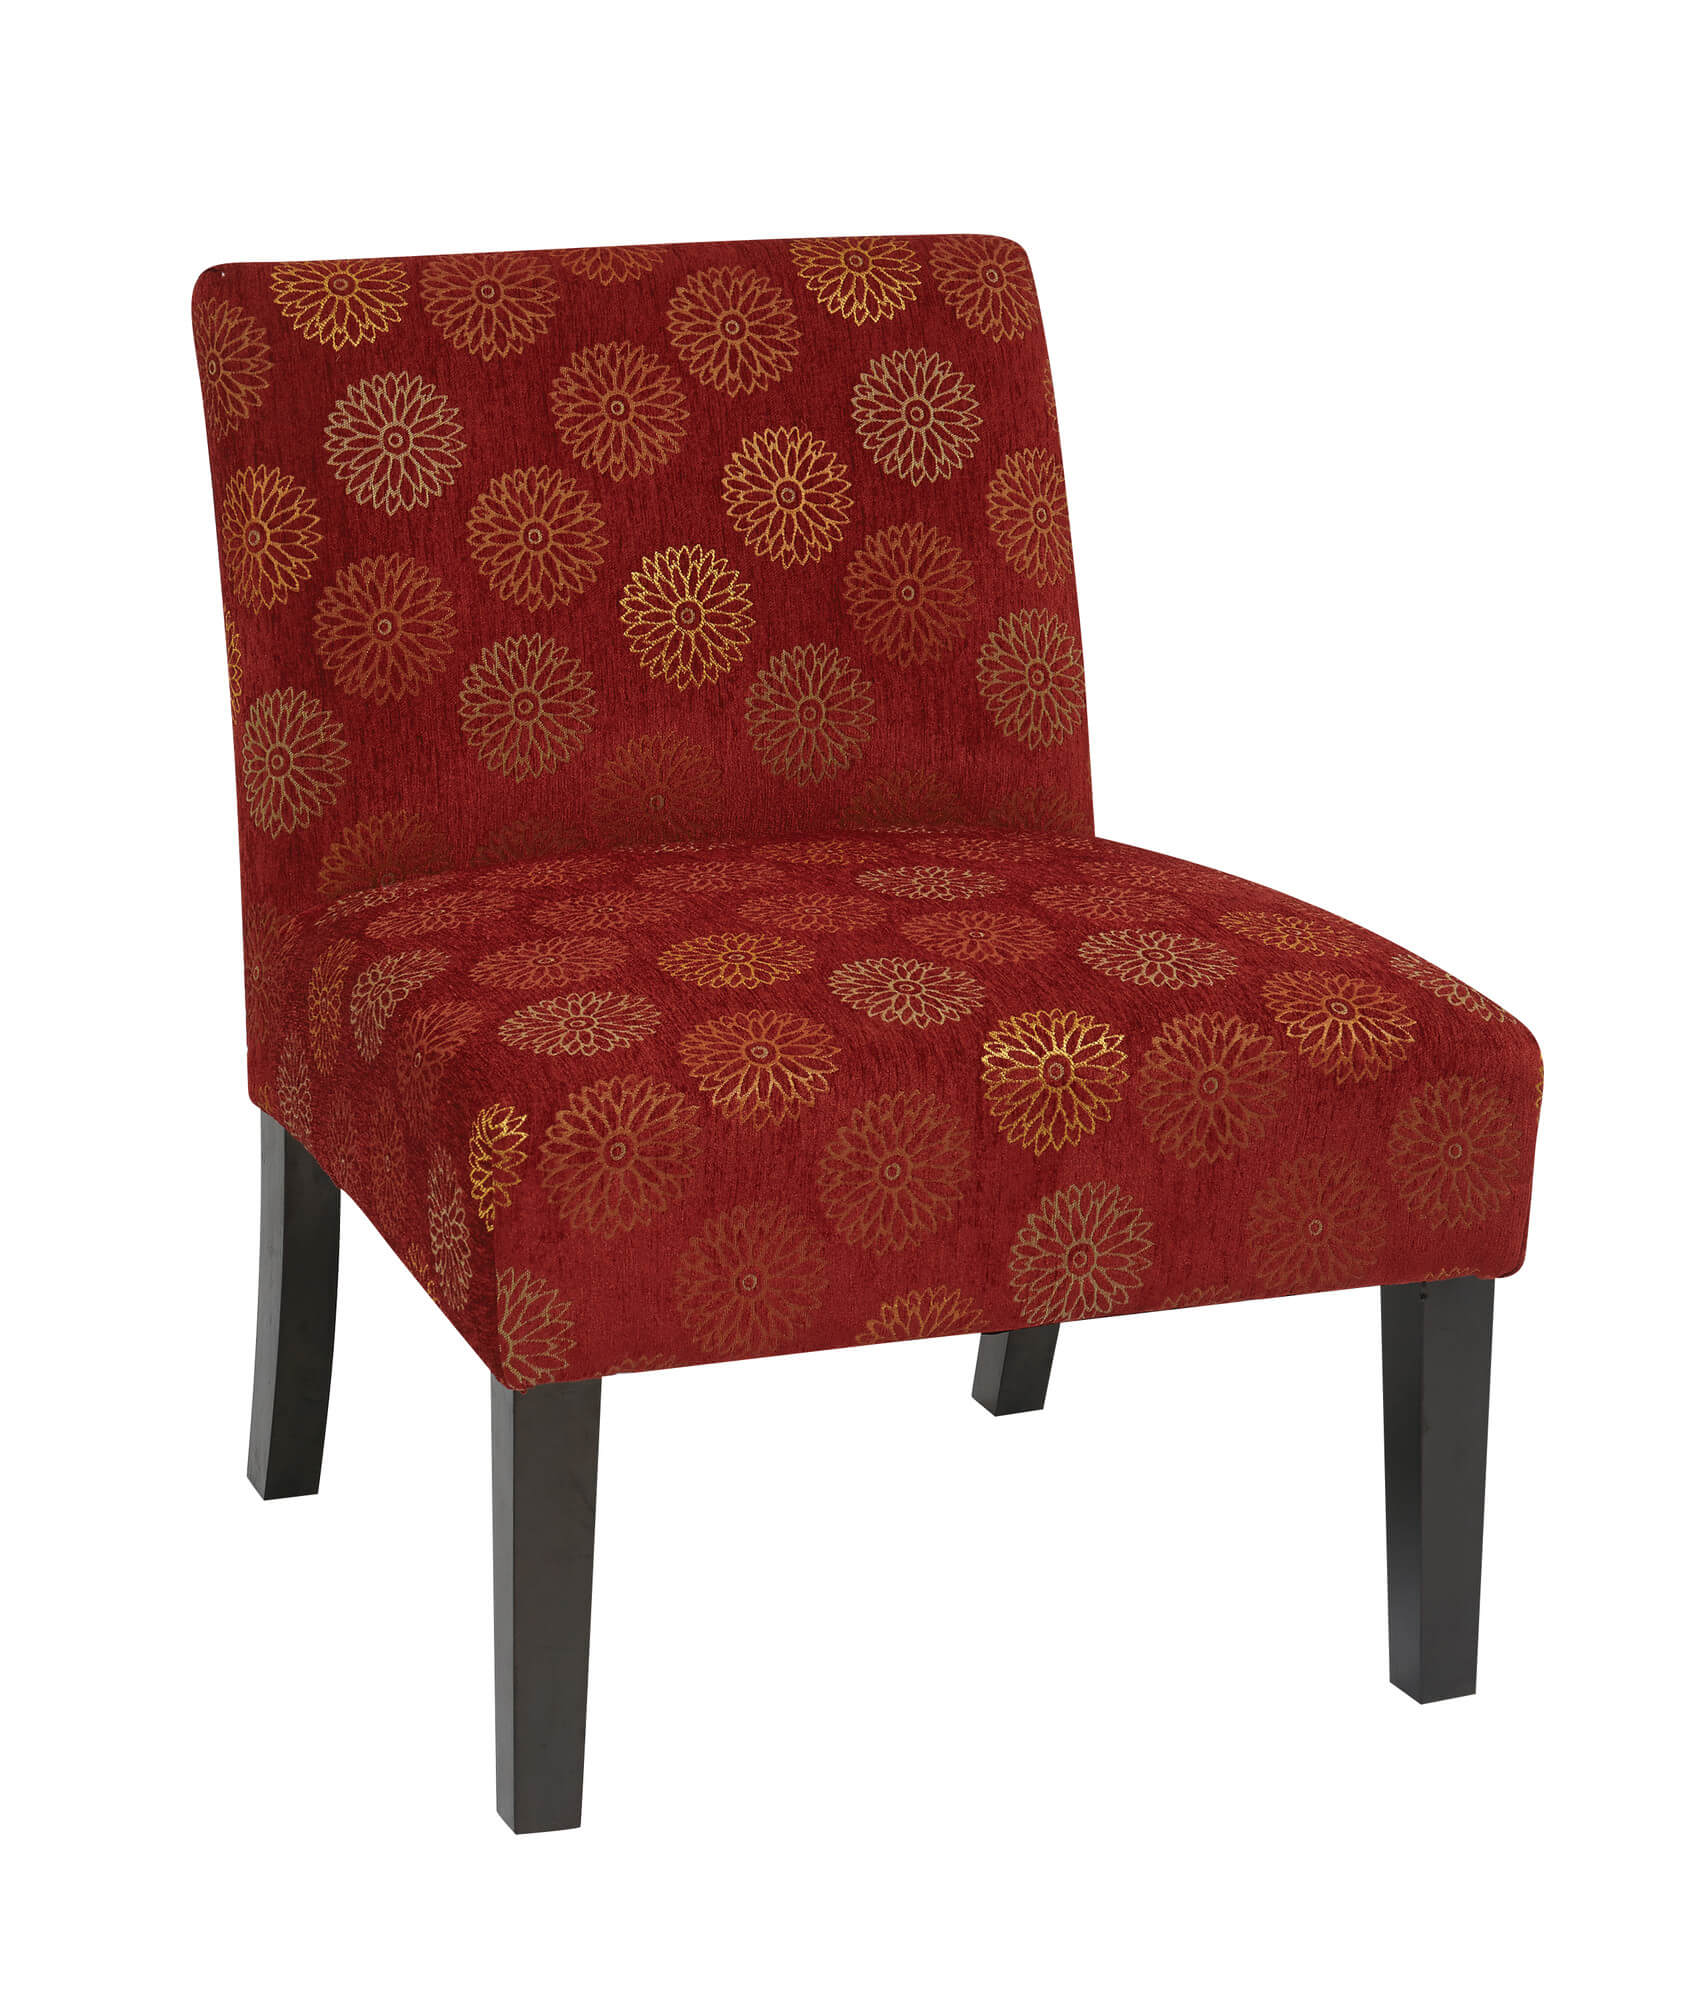 Here s a classic accent chair in that it offers a splash of color to a dark